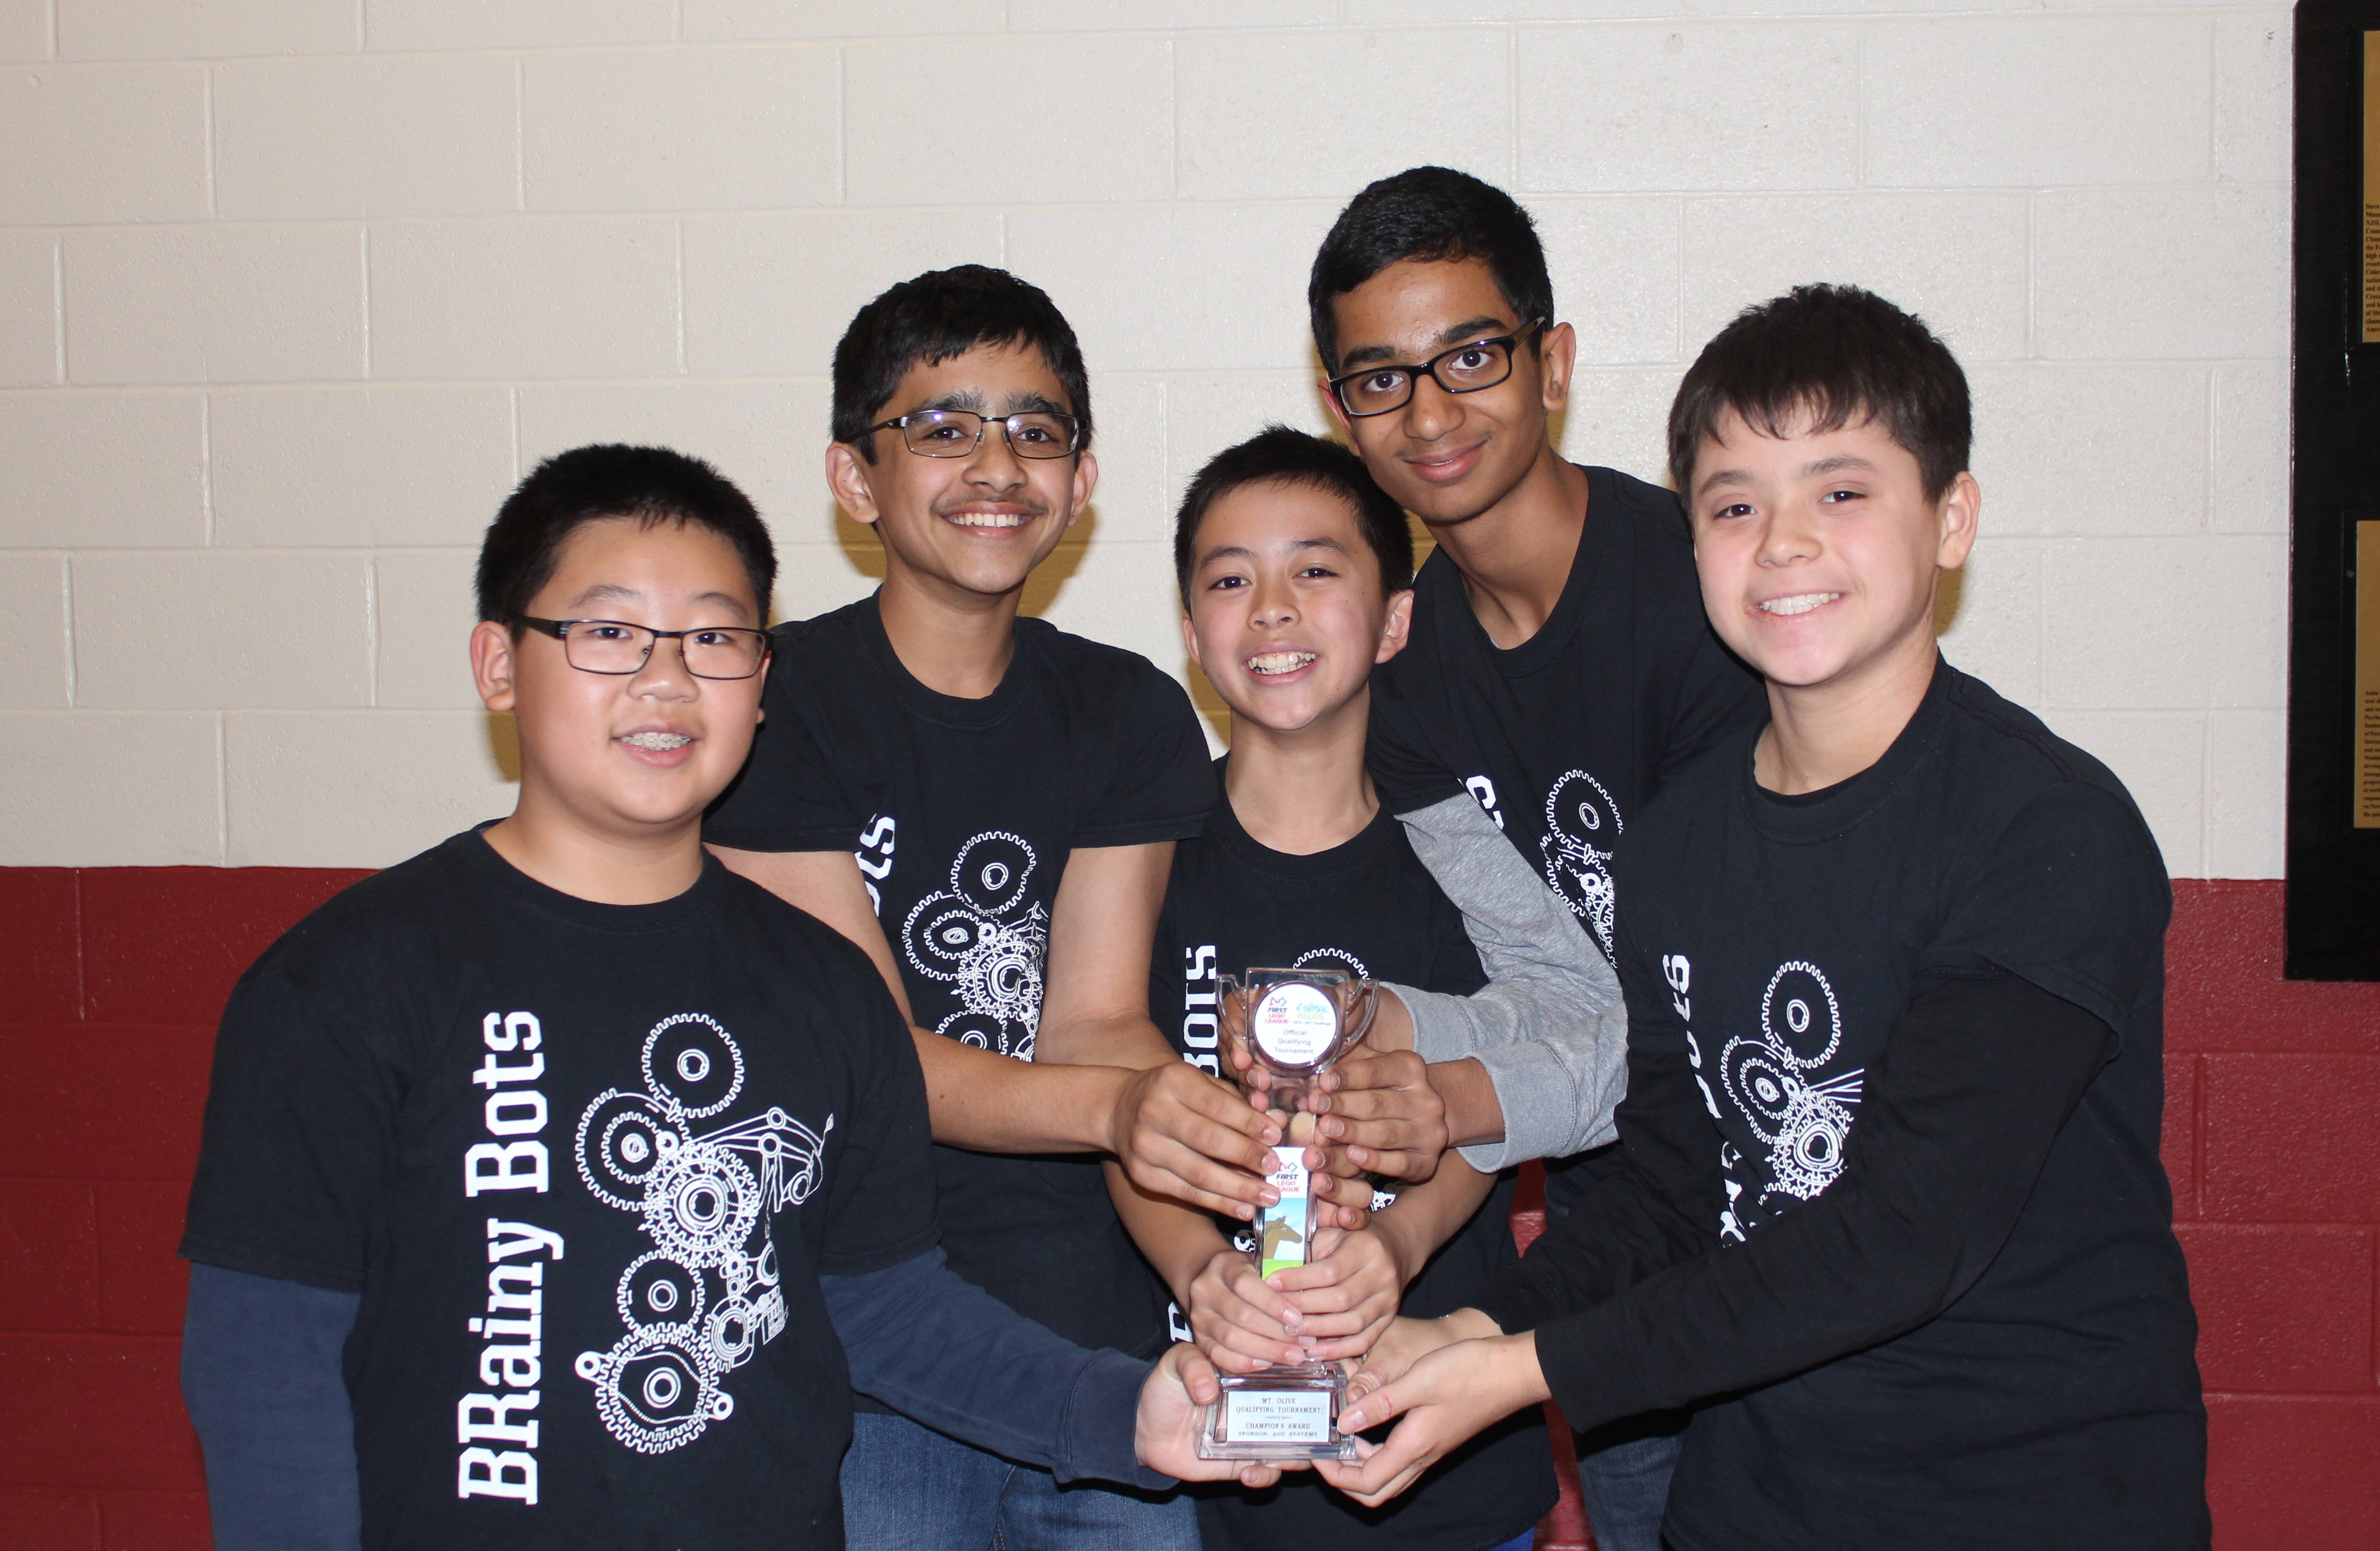 21e502580b51d51057e2_BRainy_Bots_FLL_1st_Place_Champion_Award_NOV202016.jpg